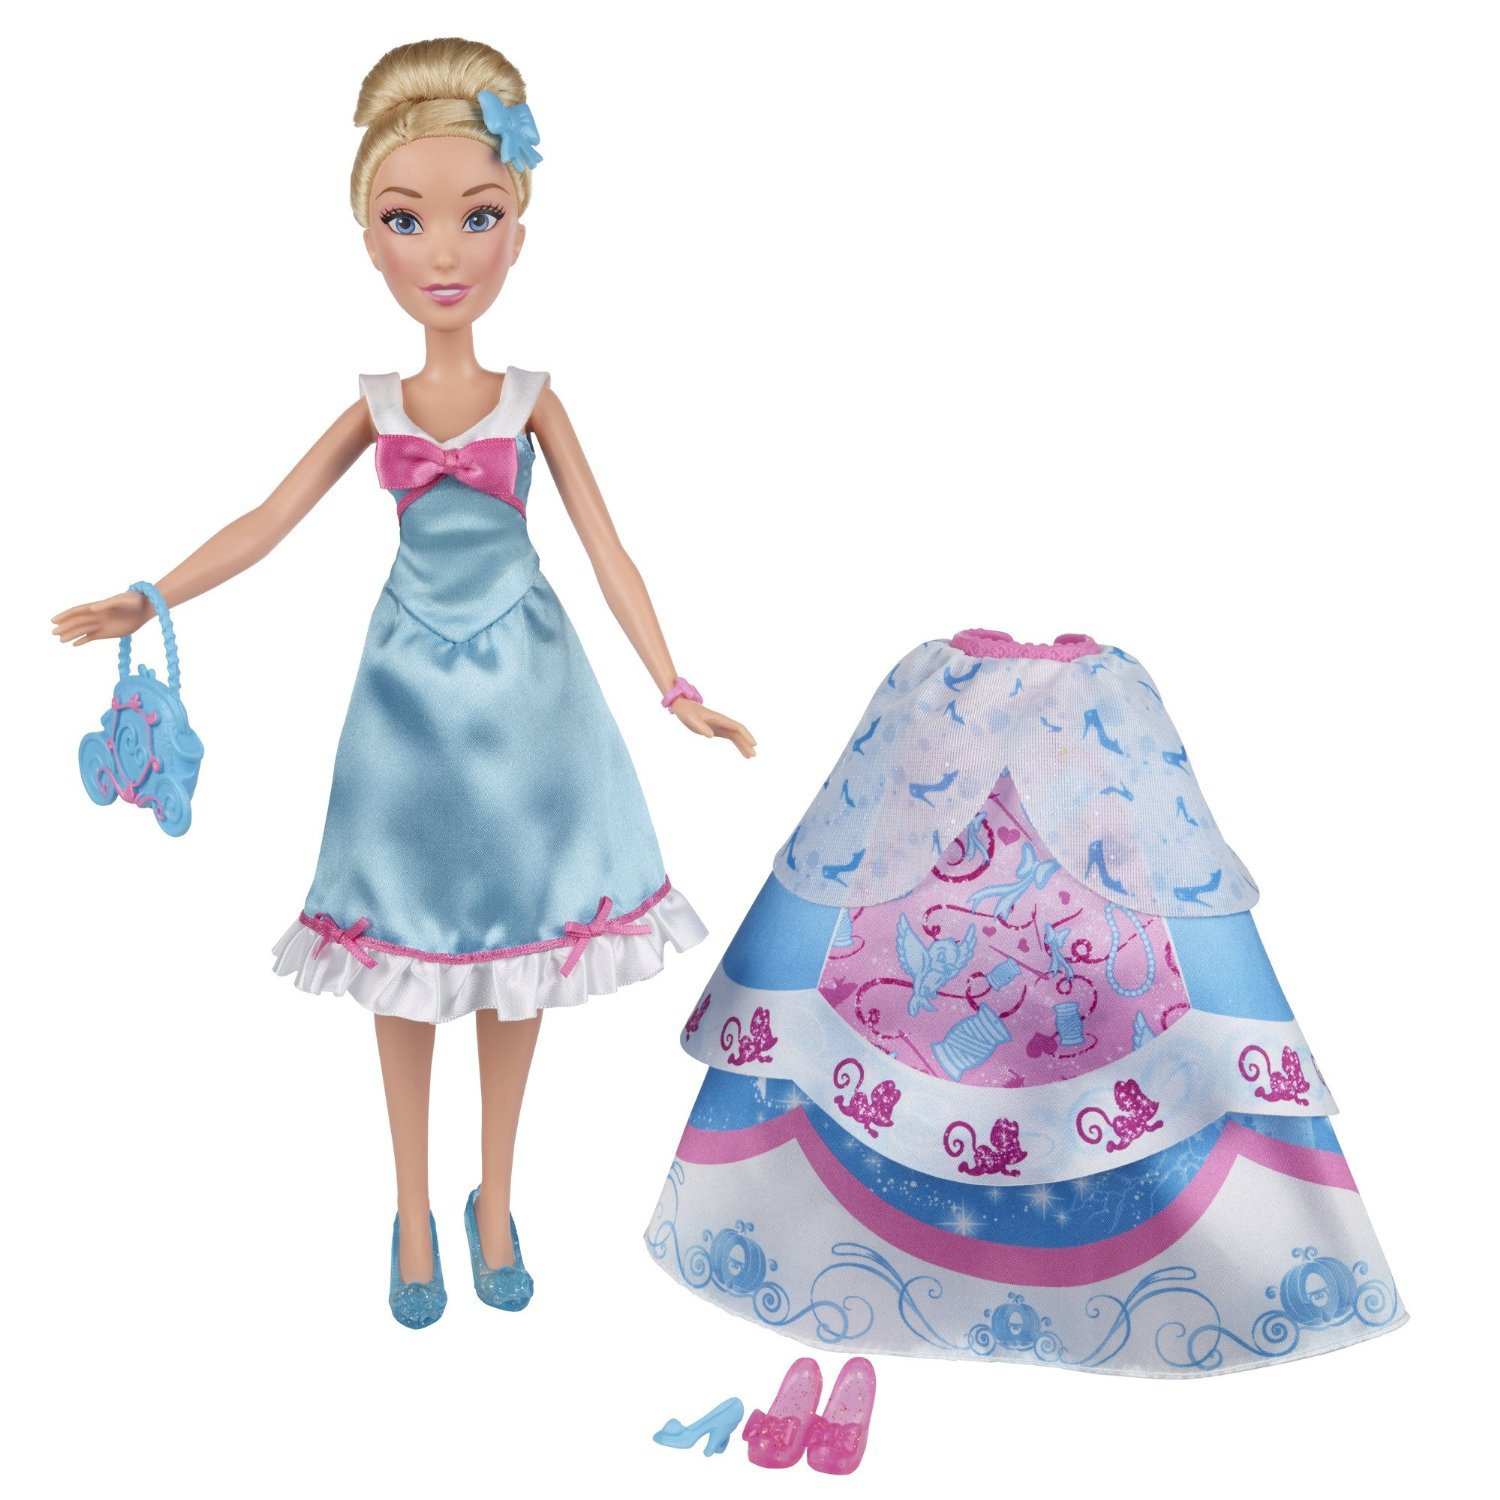 papusa disney princess cu rochita fashion - cenusareasa